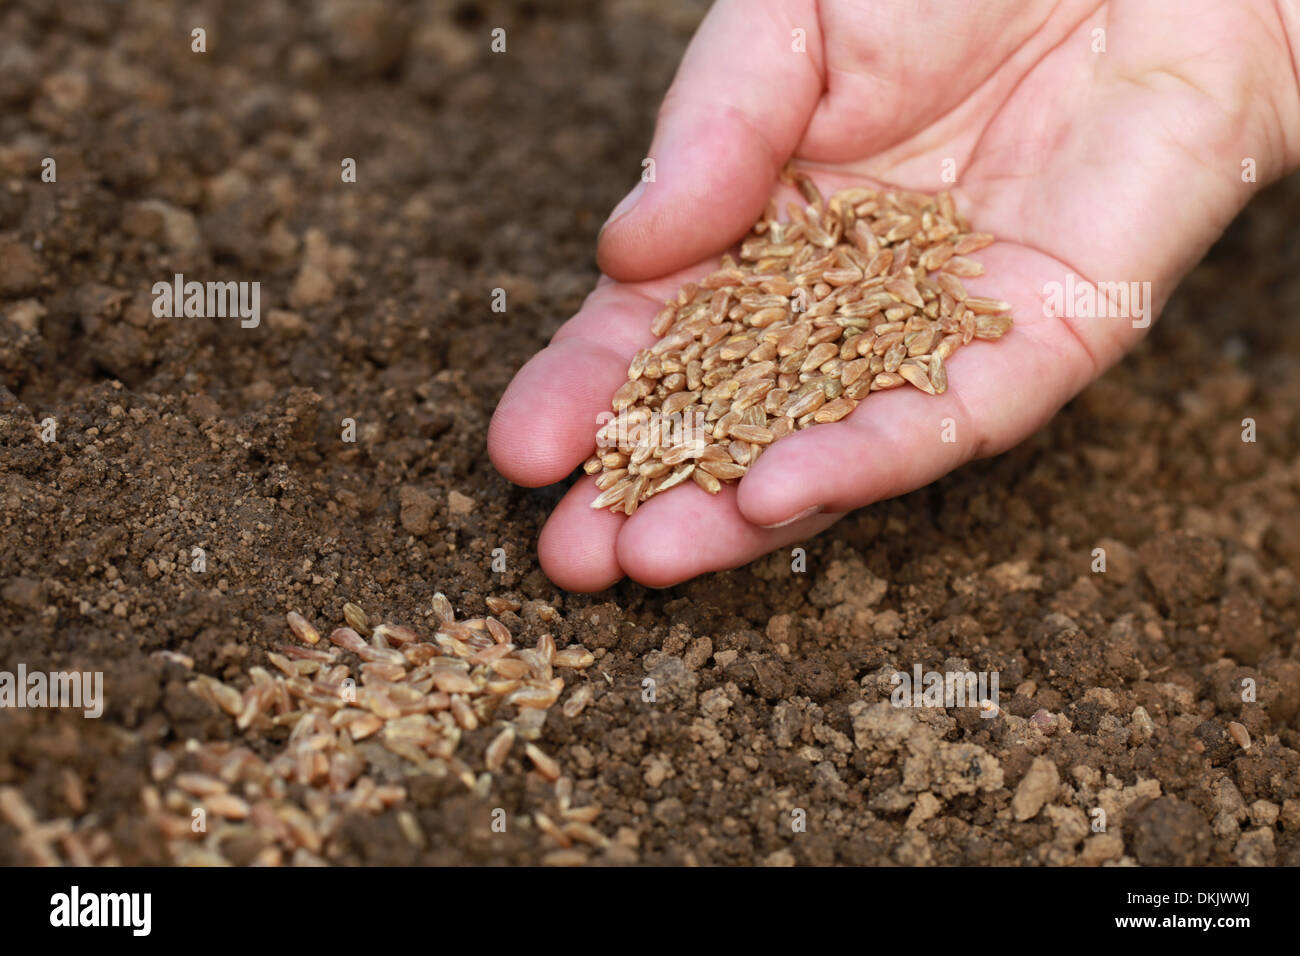 a hand is sowing seeds in the dirt in a garden - Garden Dirt